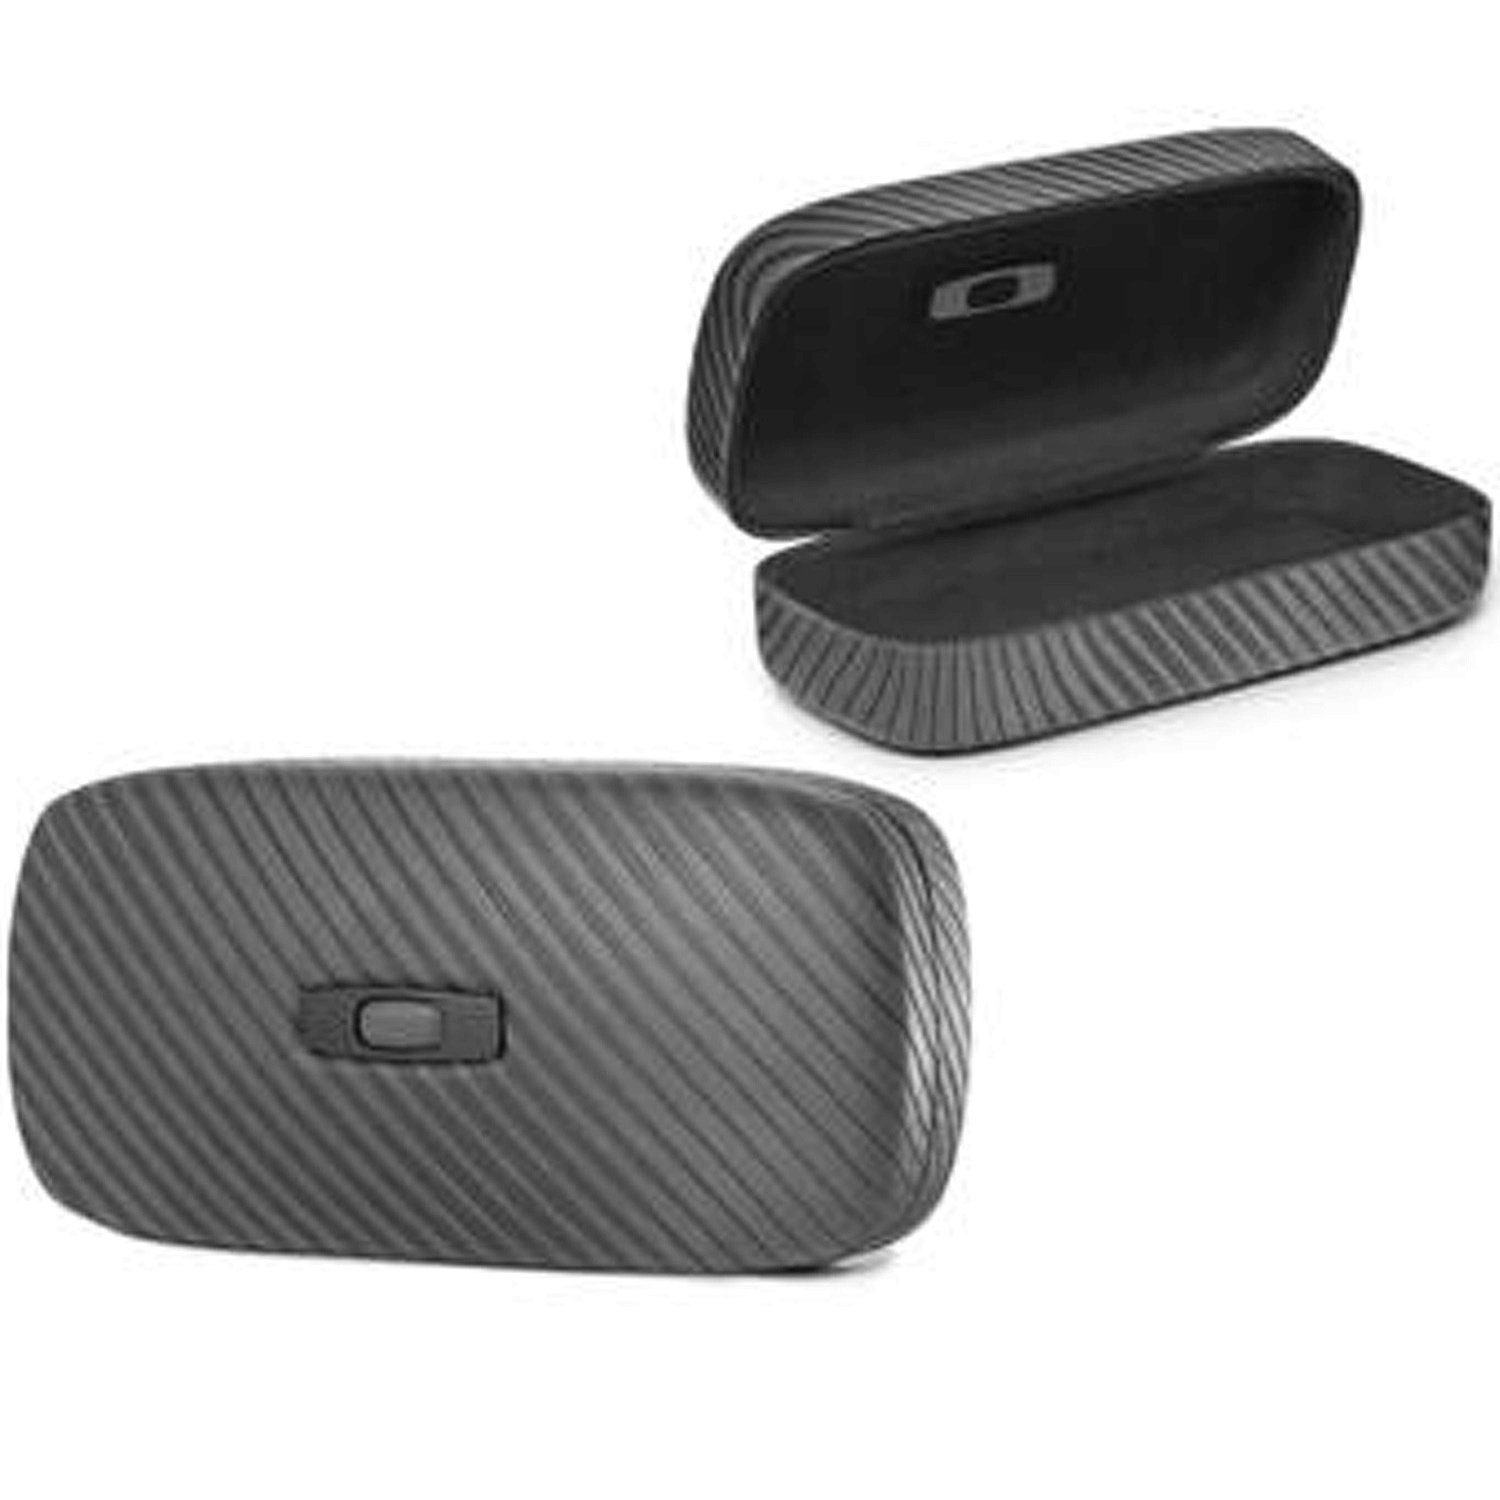 Oakley Flak Jacket Hard Case